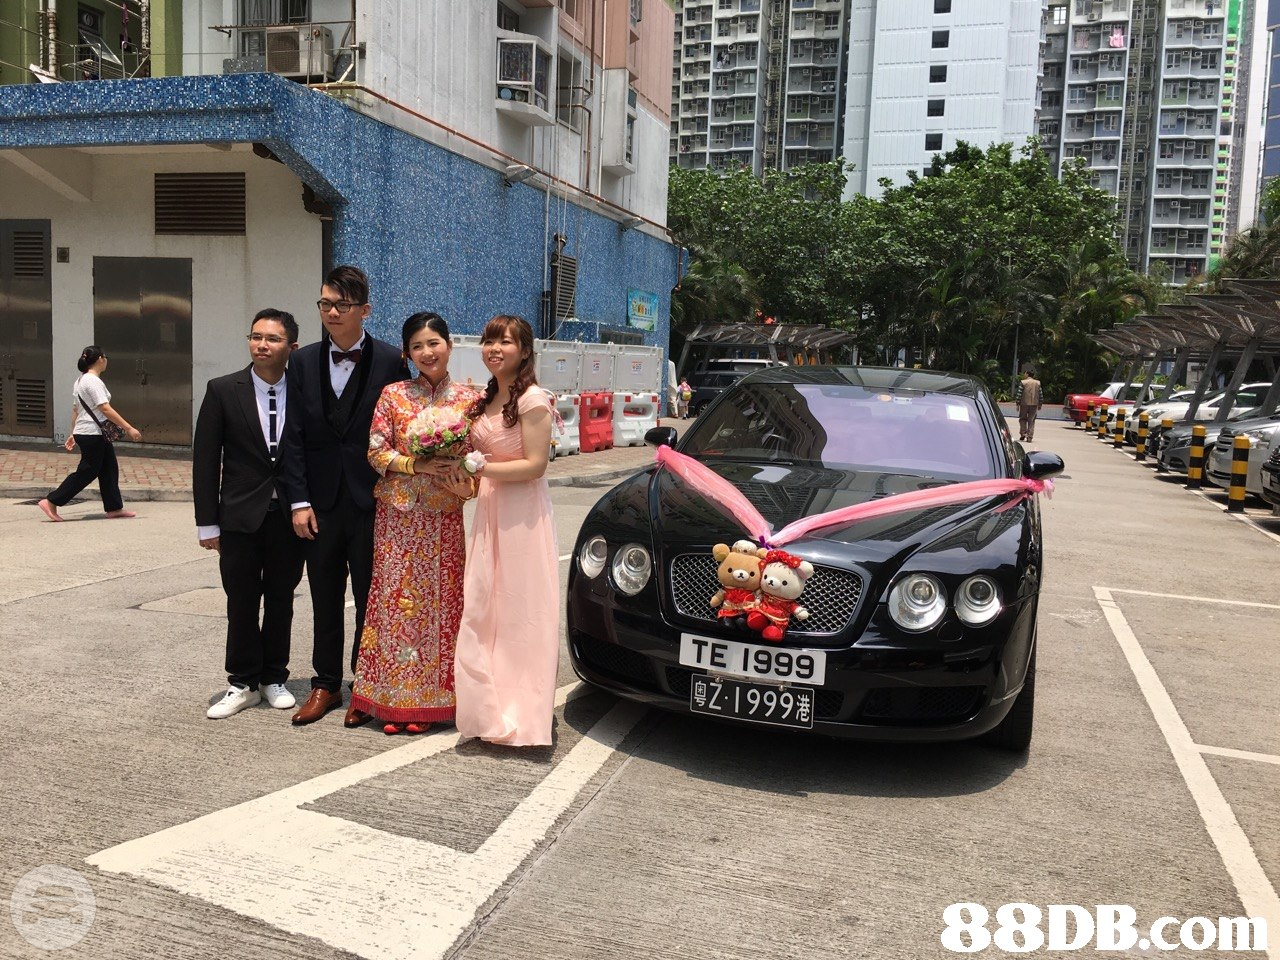 Bentley Sedan  / Kowloon, Hong Kong   / Hourly HKD 749.00